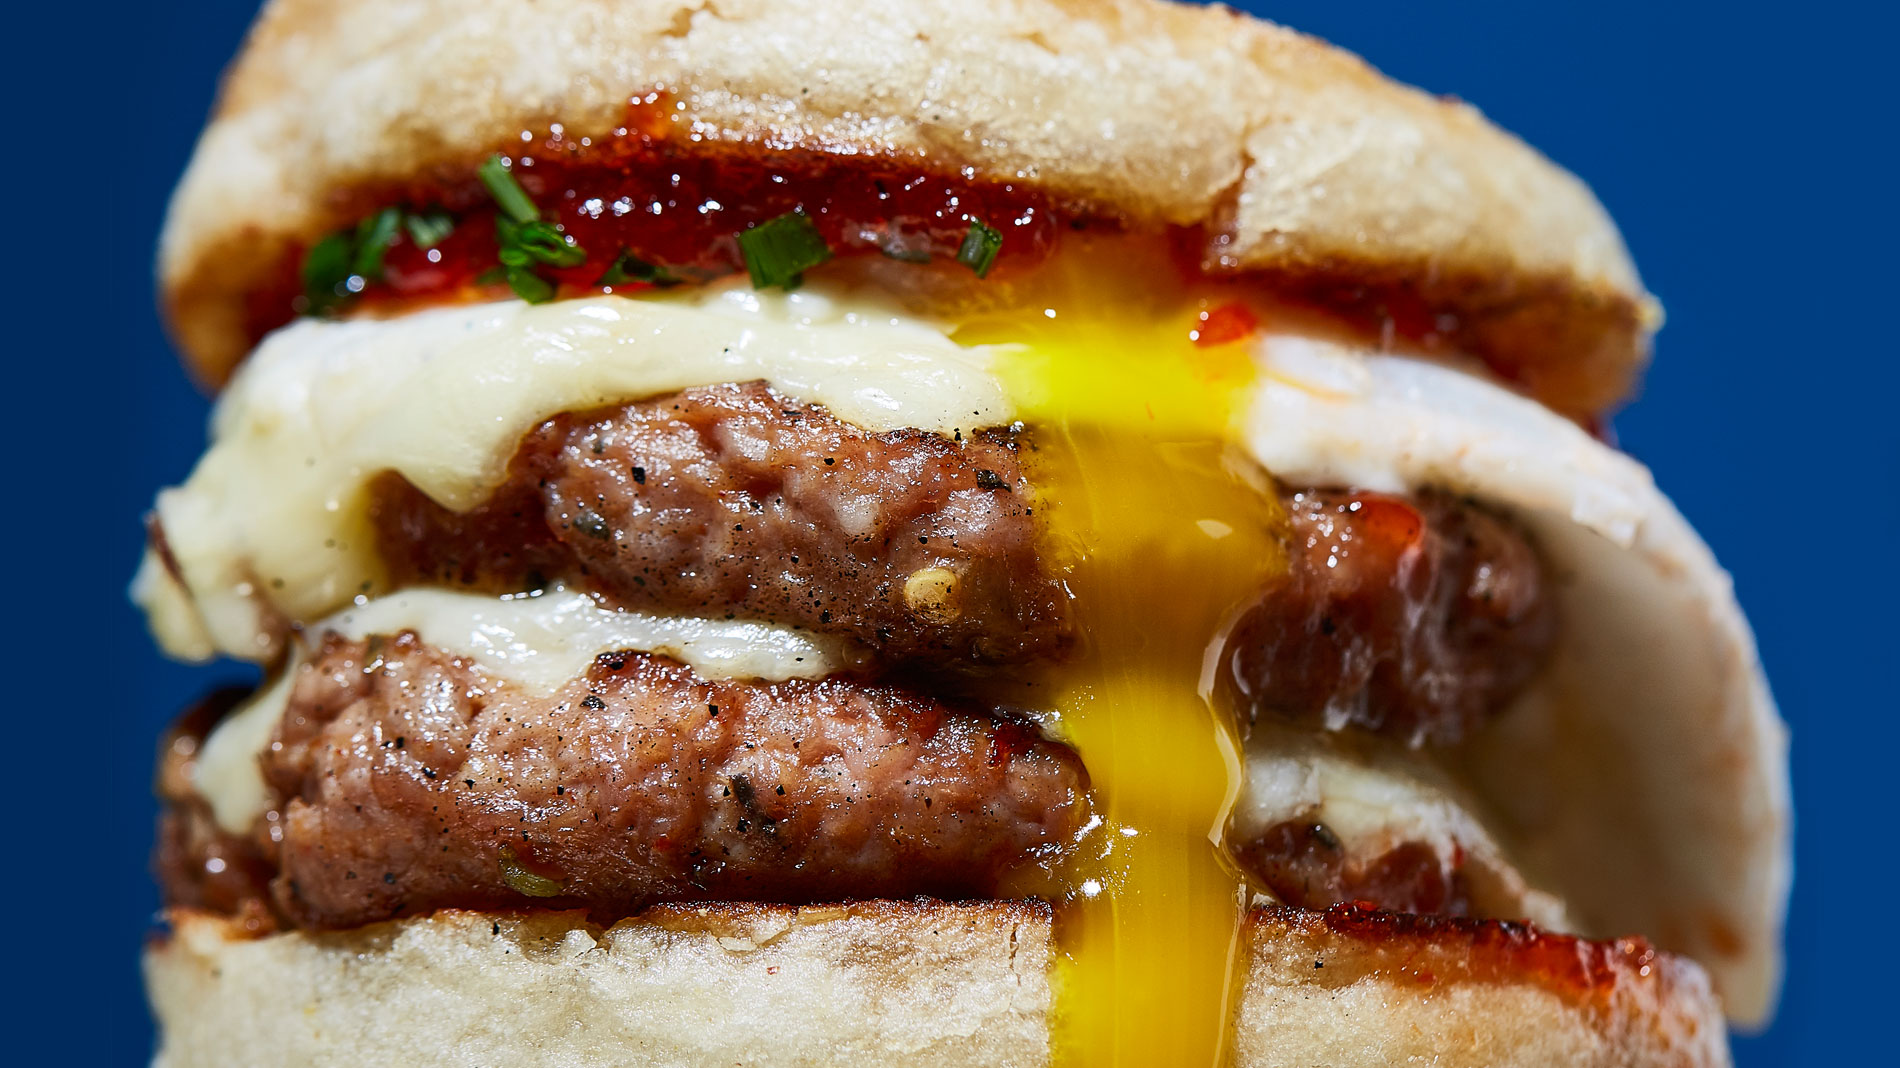 a close-up photo of double sausage patty breakfast sandwich with cheese and egg